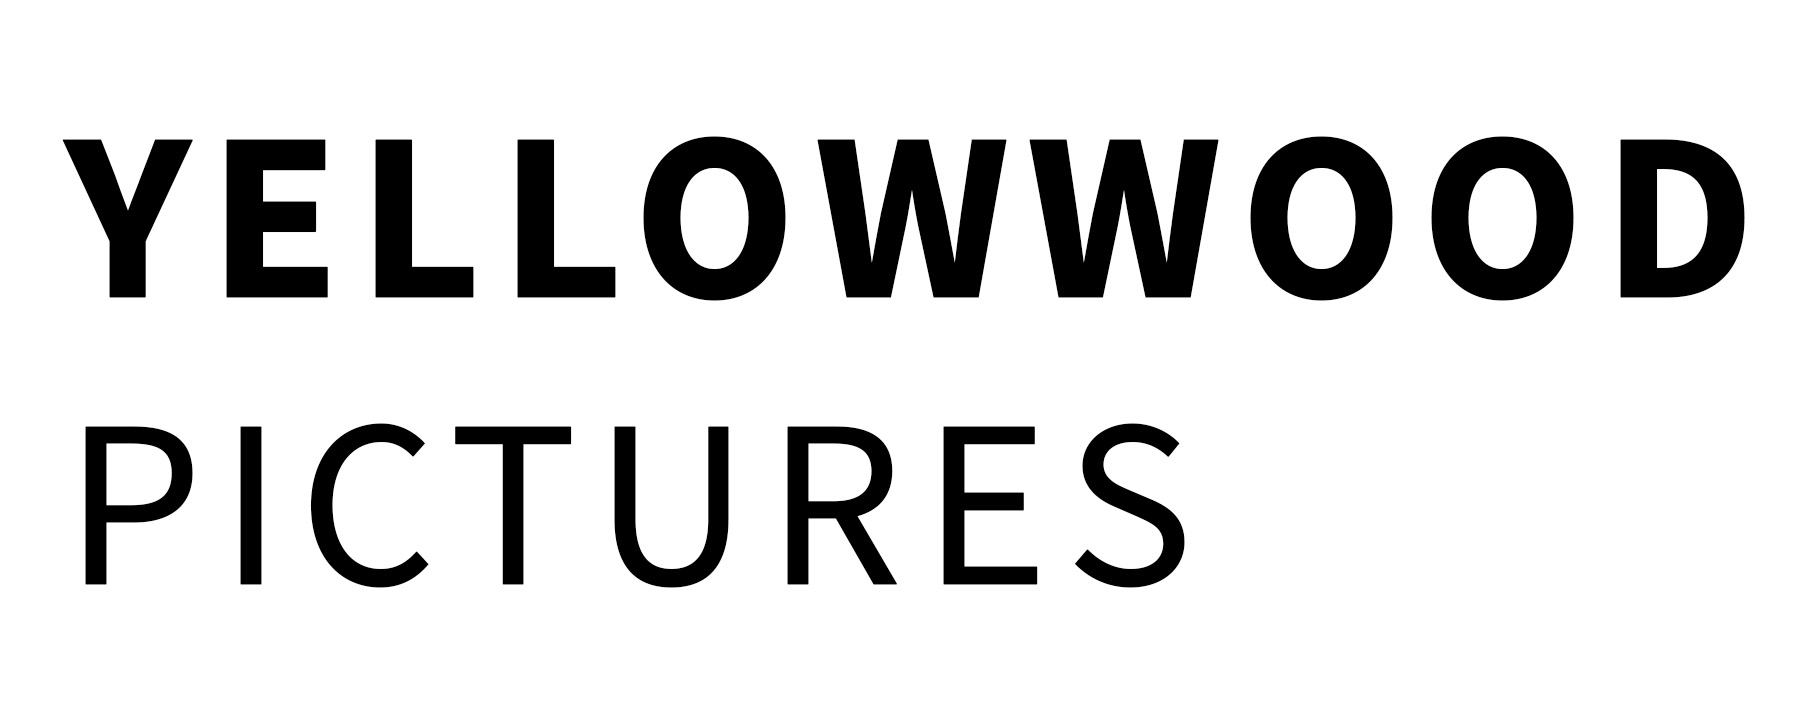 Yellowwood Pictures